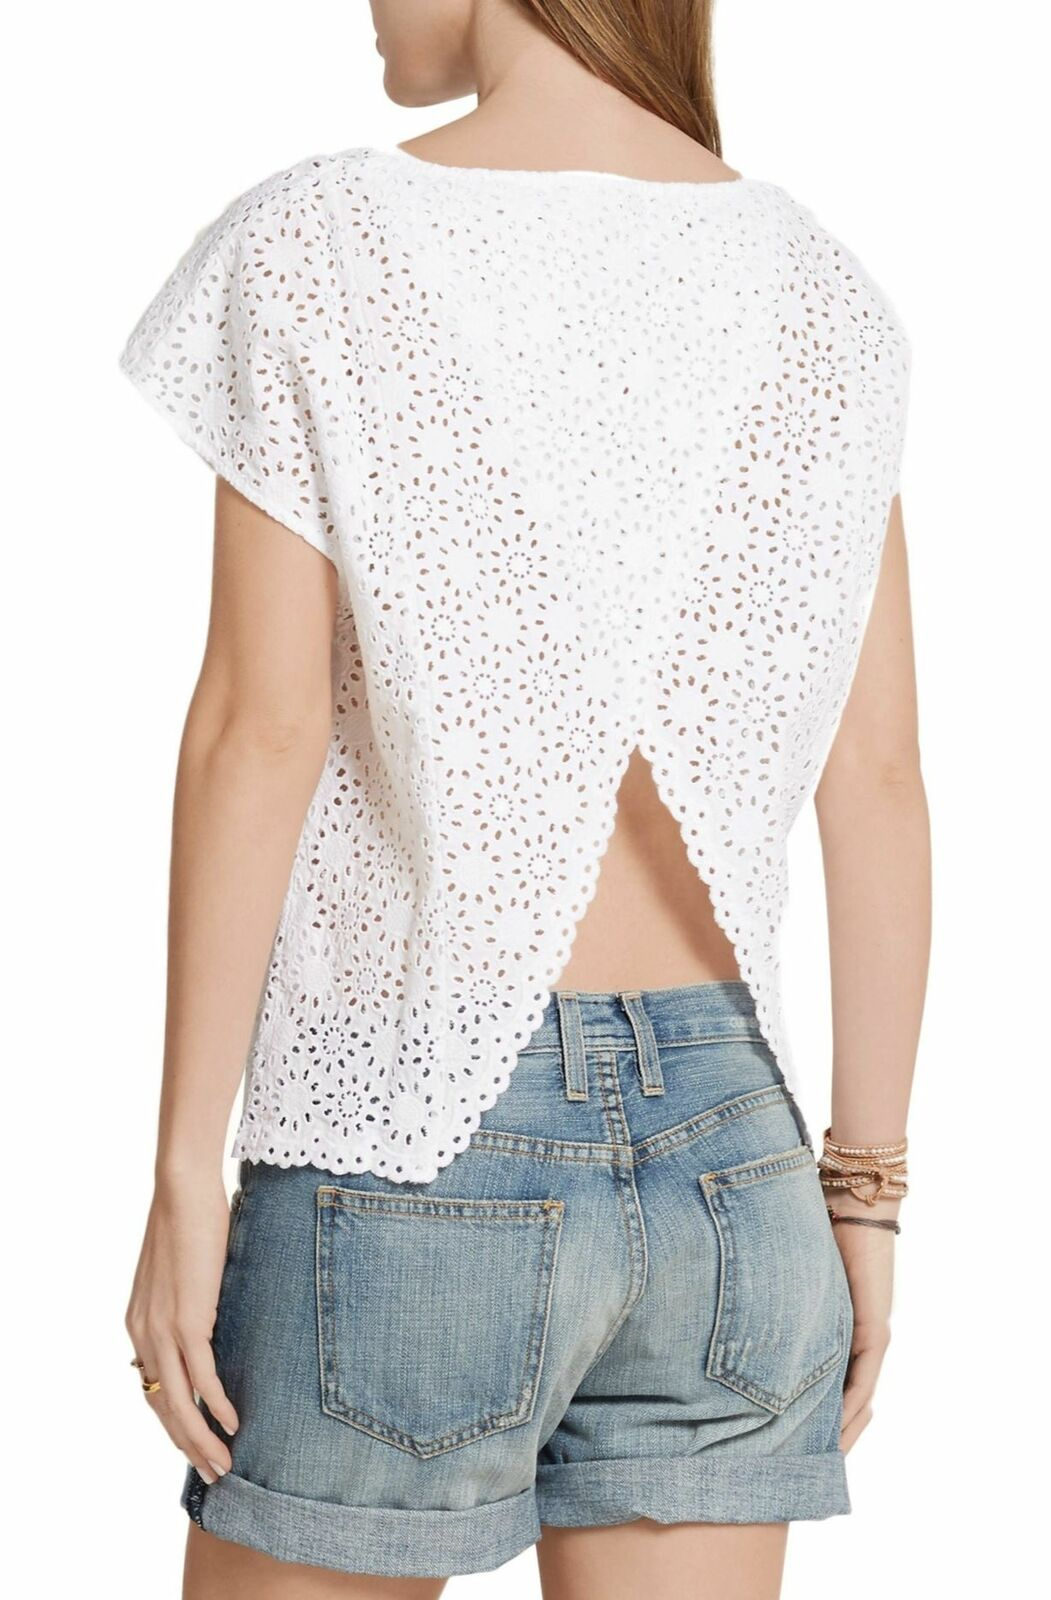 M.I.H. JEANS Weiß Open Back Broderie Anglaise Cotton Top S NEW WITH TAGS